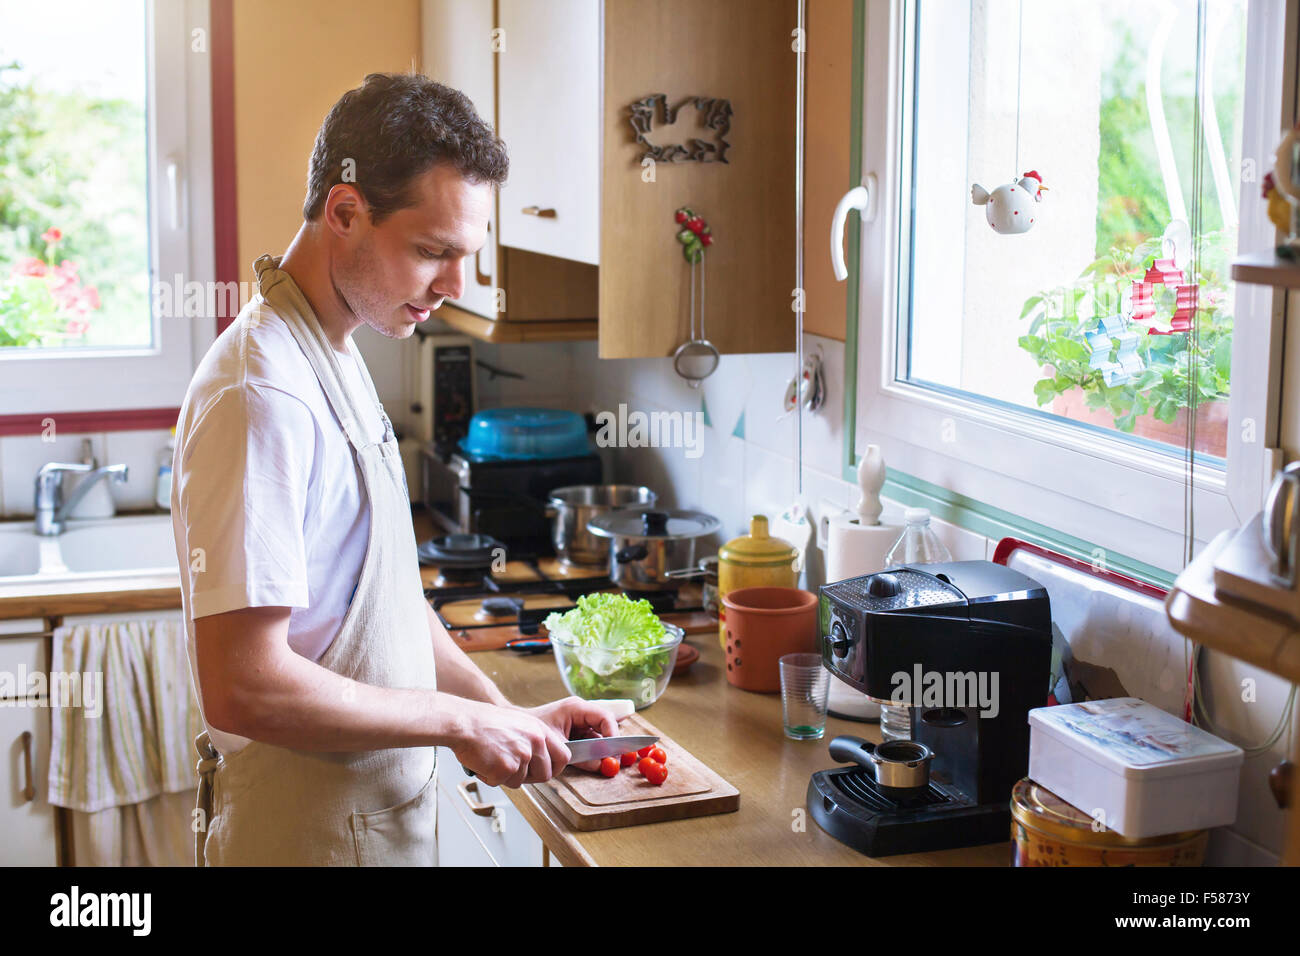 cooking healthy food, young male cutting tomatoes in the kitchen - Stock Image